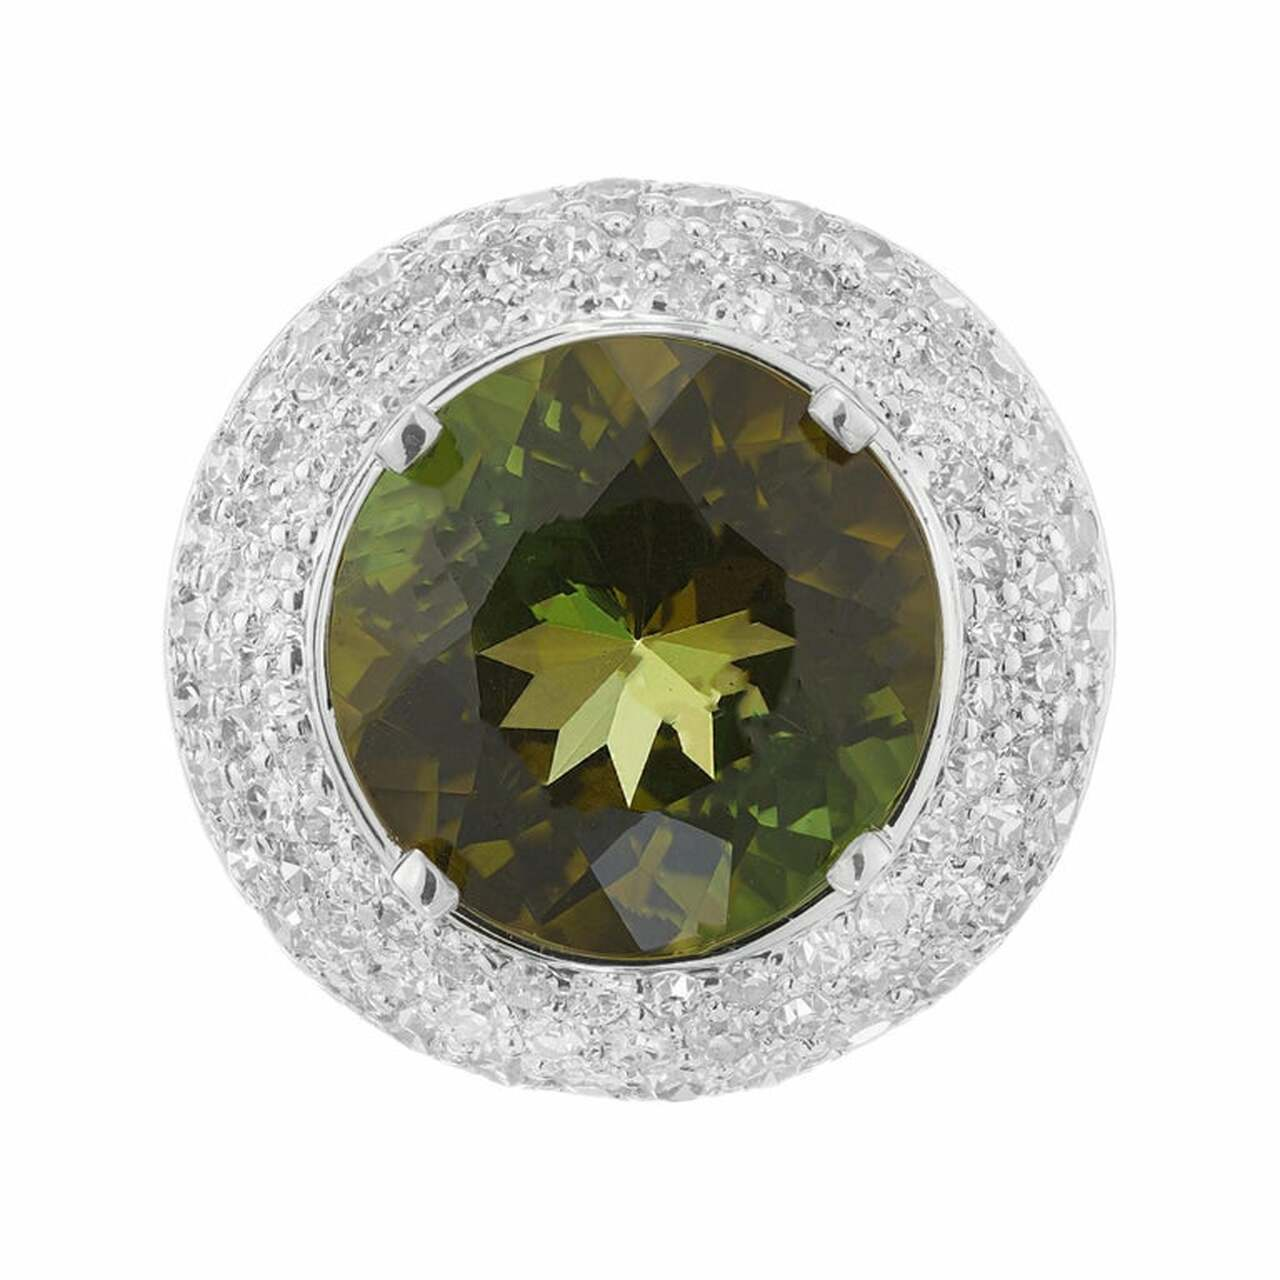 October Tourmaline is Sure to Dazzle You